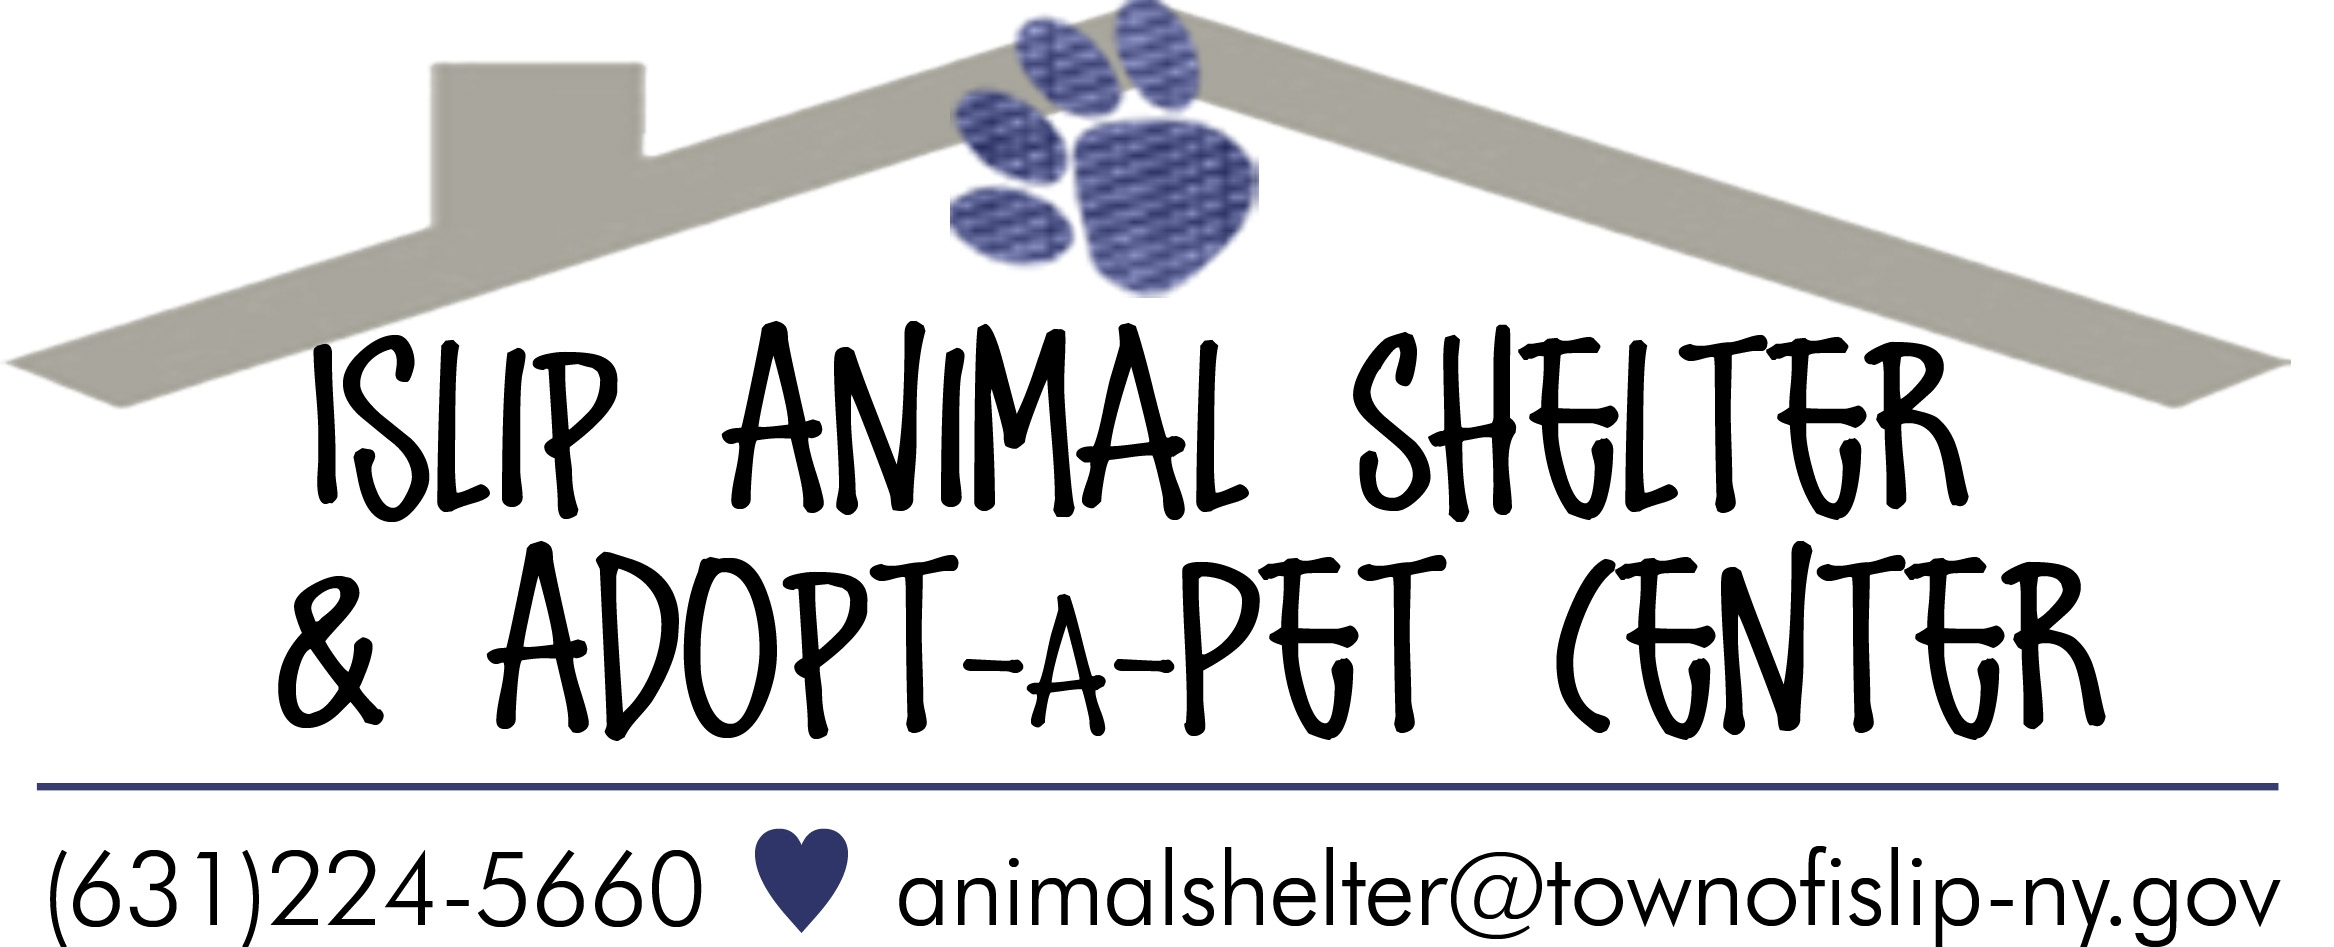 Islip Animal Shelter and Adopt-a-Pet Center